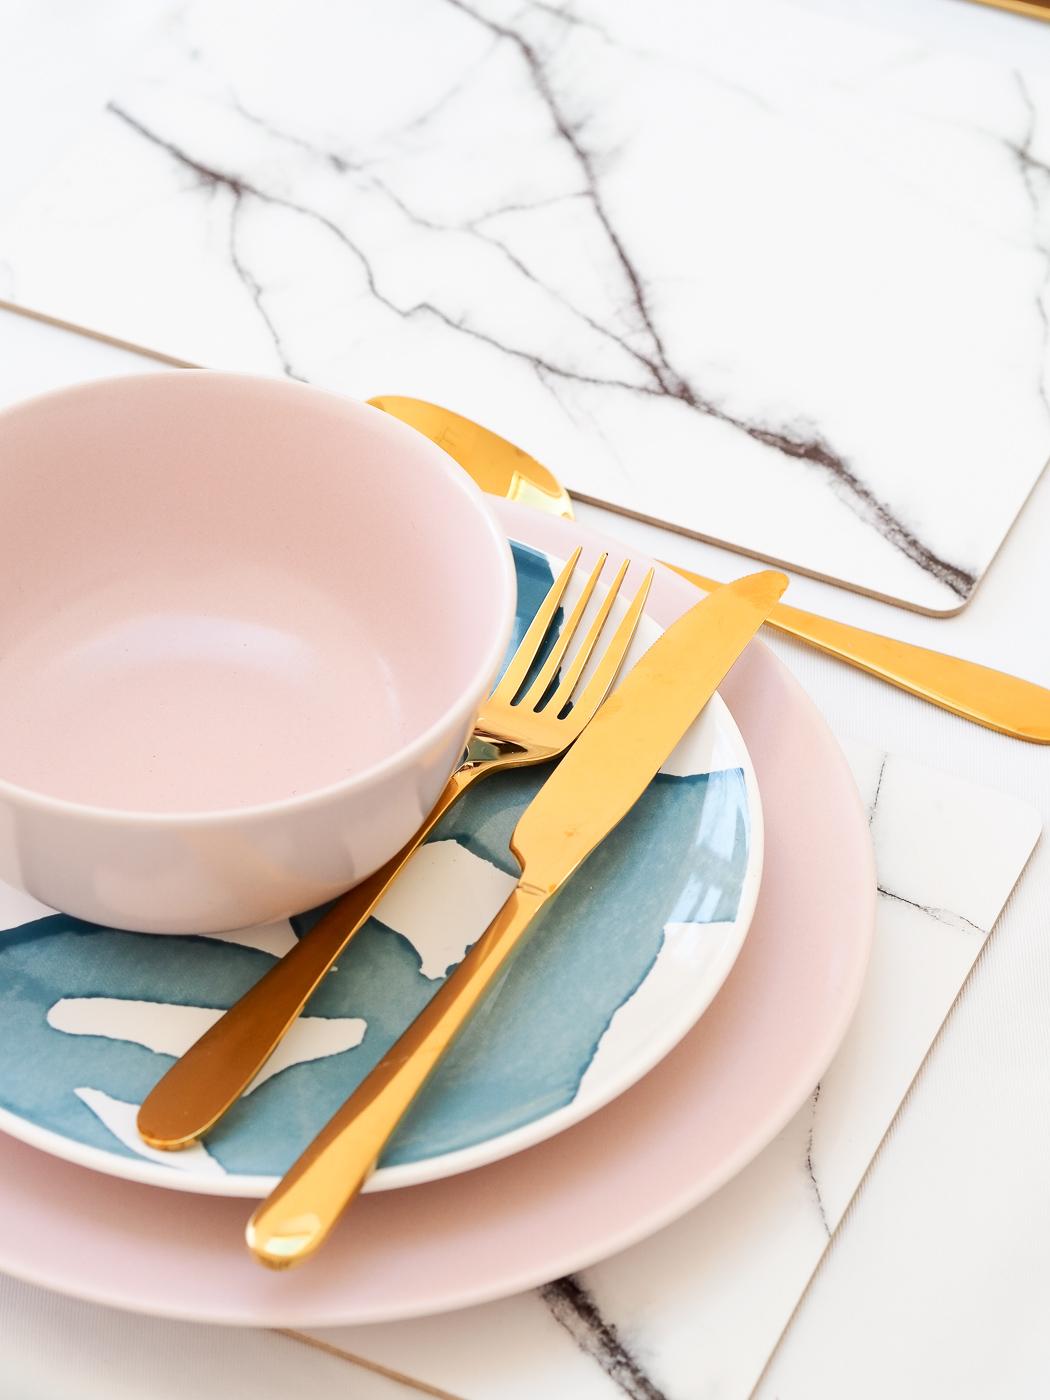 pink  IKEA plates and dishes